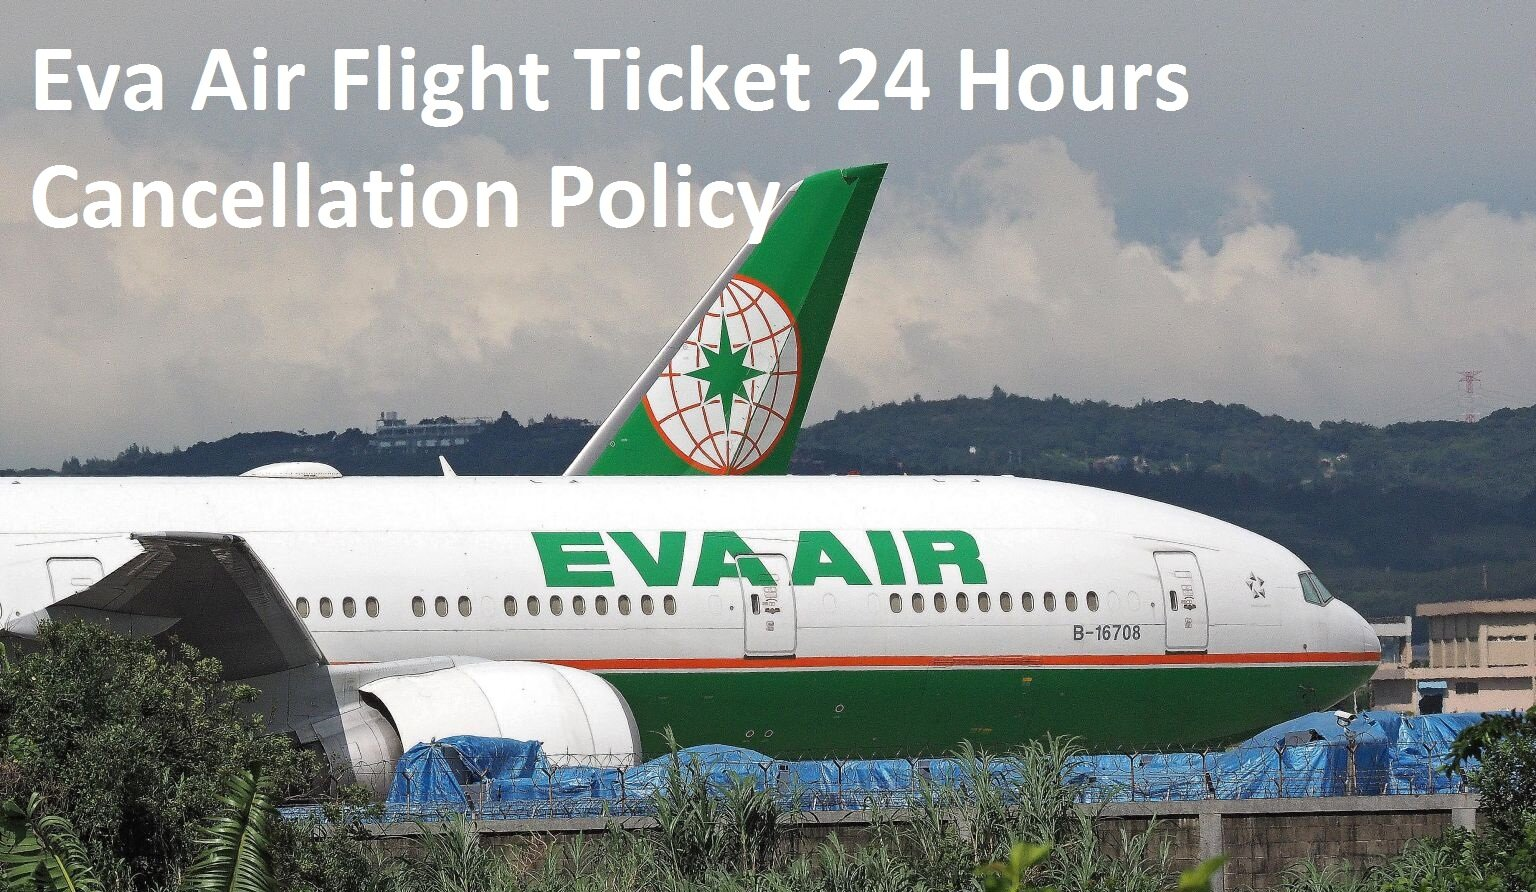 Eva Air Flight Ticket 24 Hours Cancellation Policy